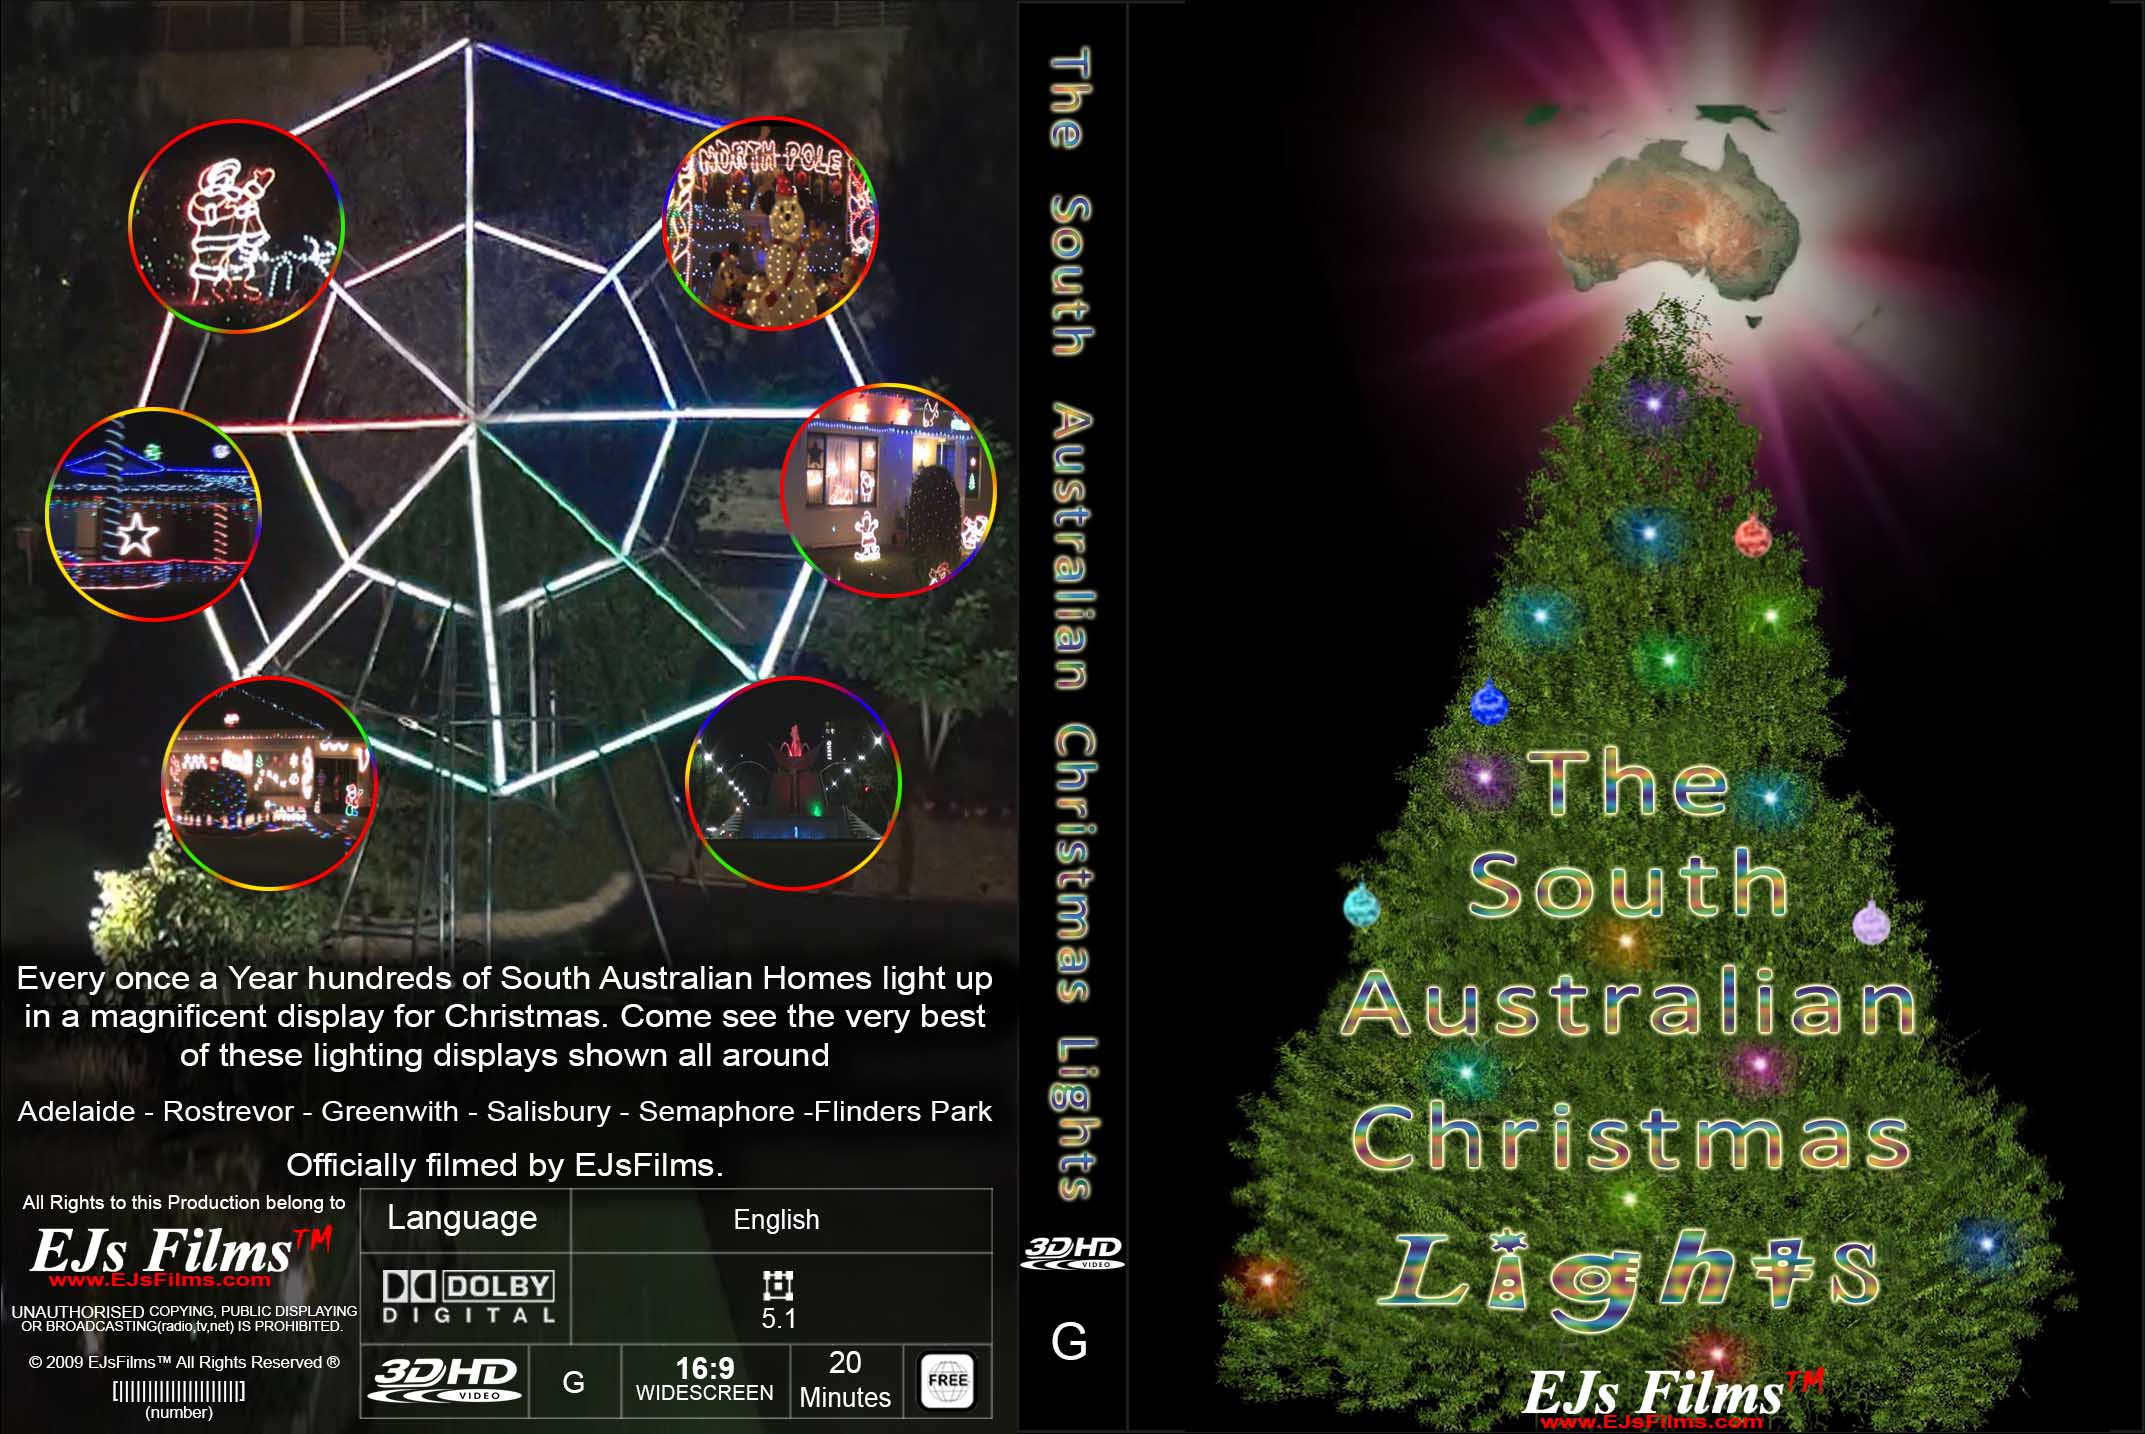 The South Australian Christmas Lights (3D) | G | Documentary | 2014 | by EJsFilms.com -